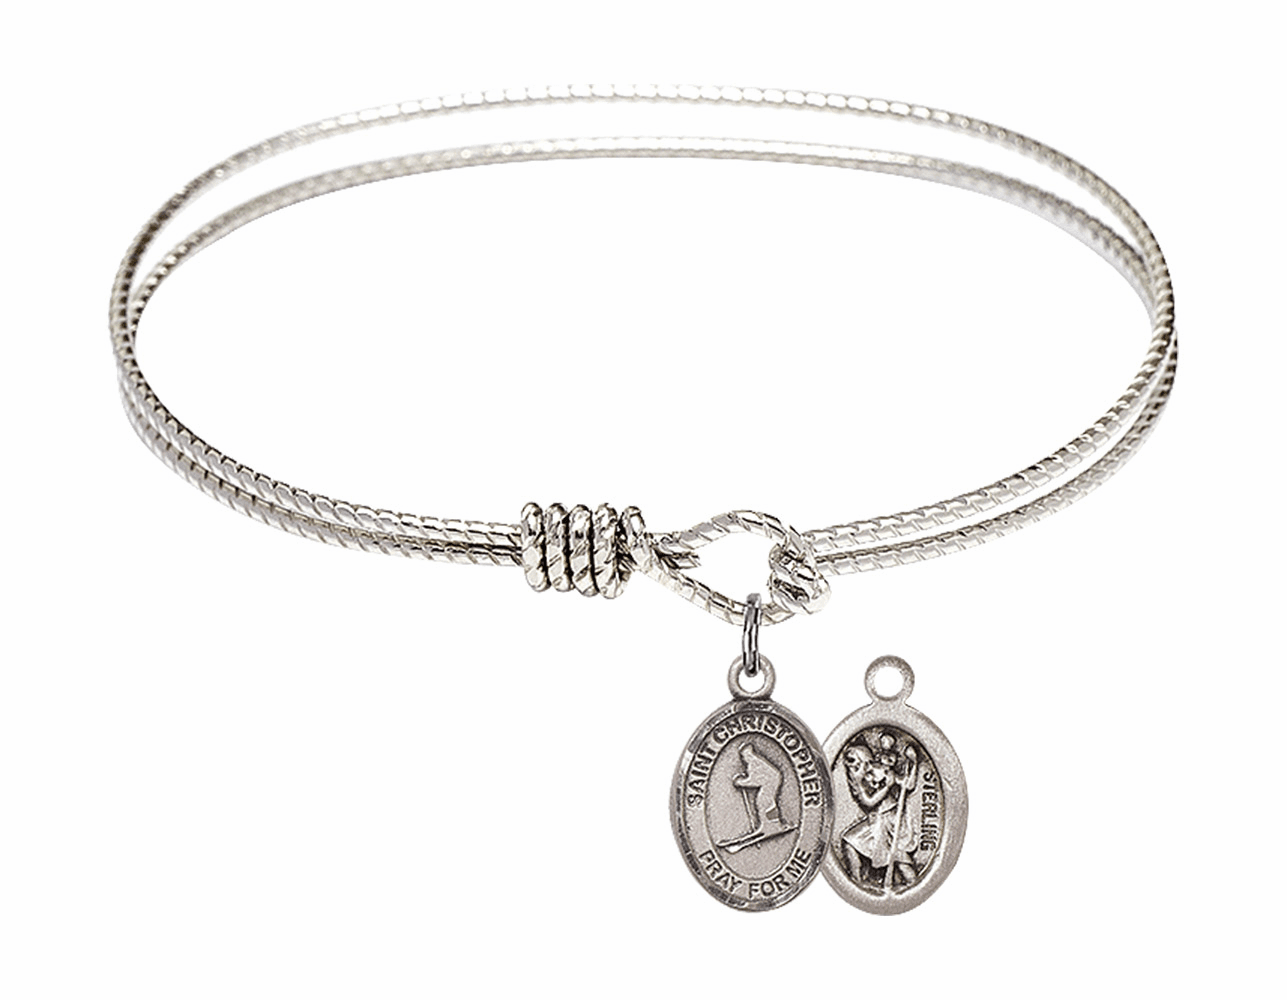 Twist Round Eye Hook St Christopher Skiing Bangle Charm Bracelet by Bliss